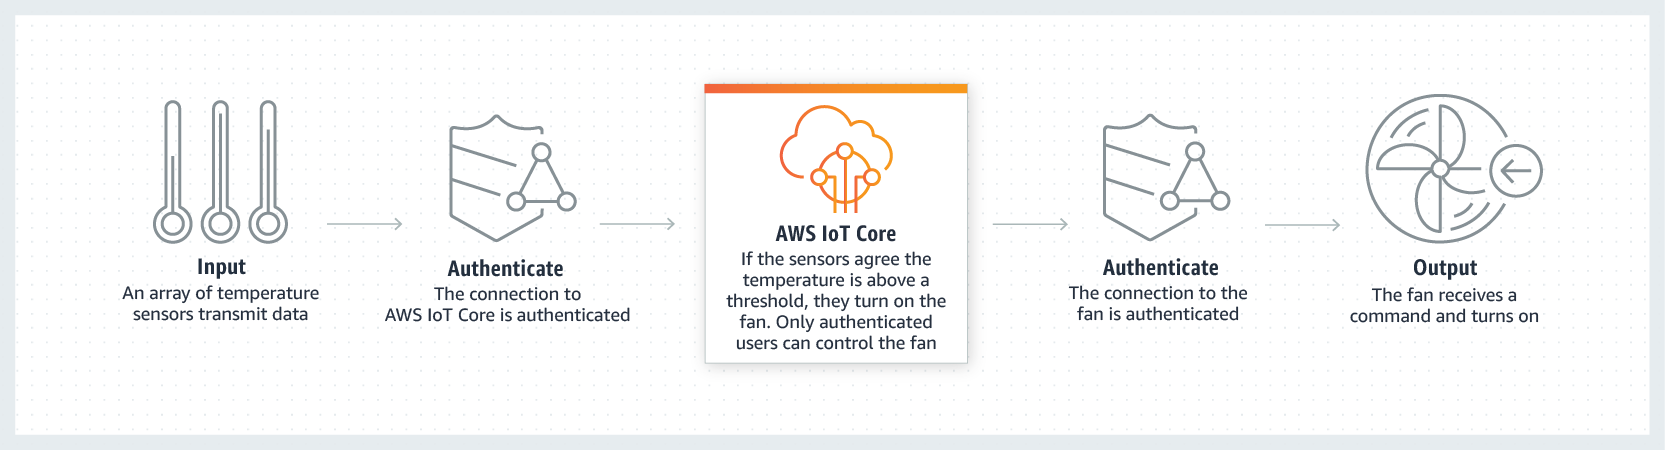 AWS IoT Core - Secure Connections